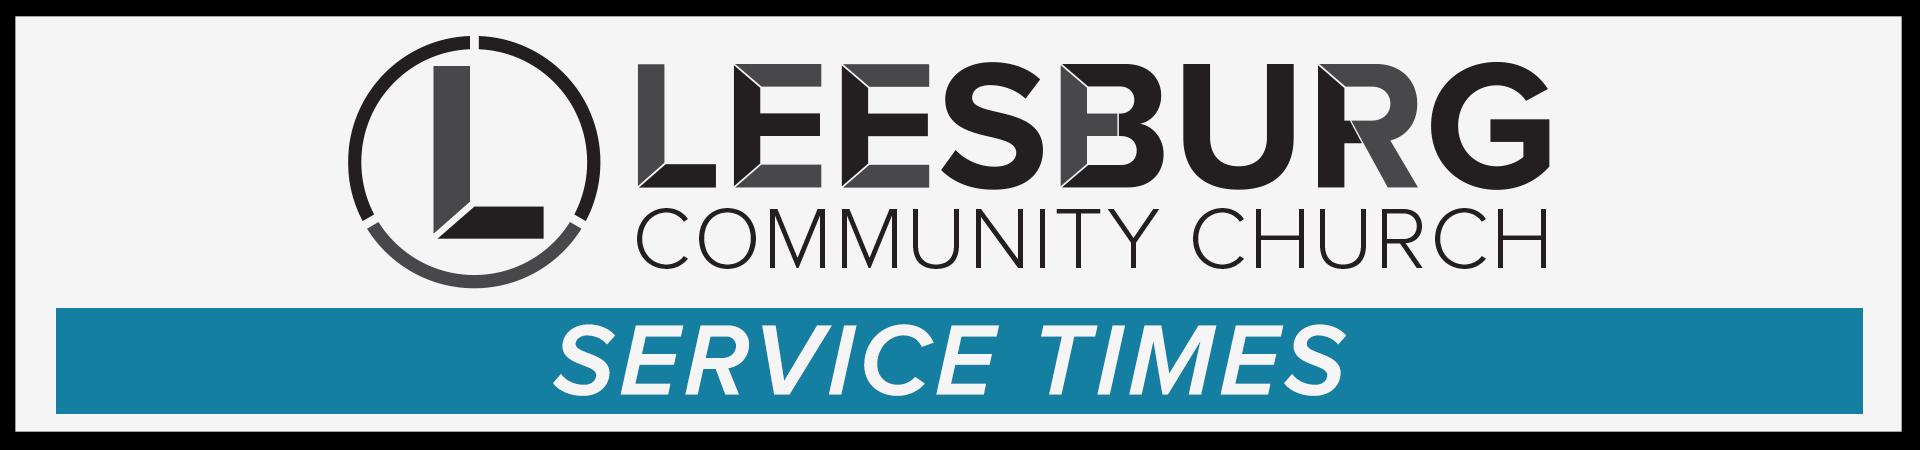 Service Times Banner.png